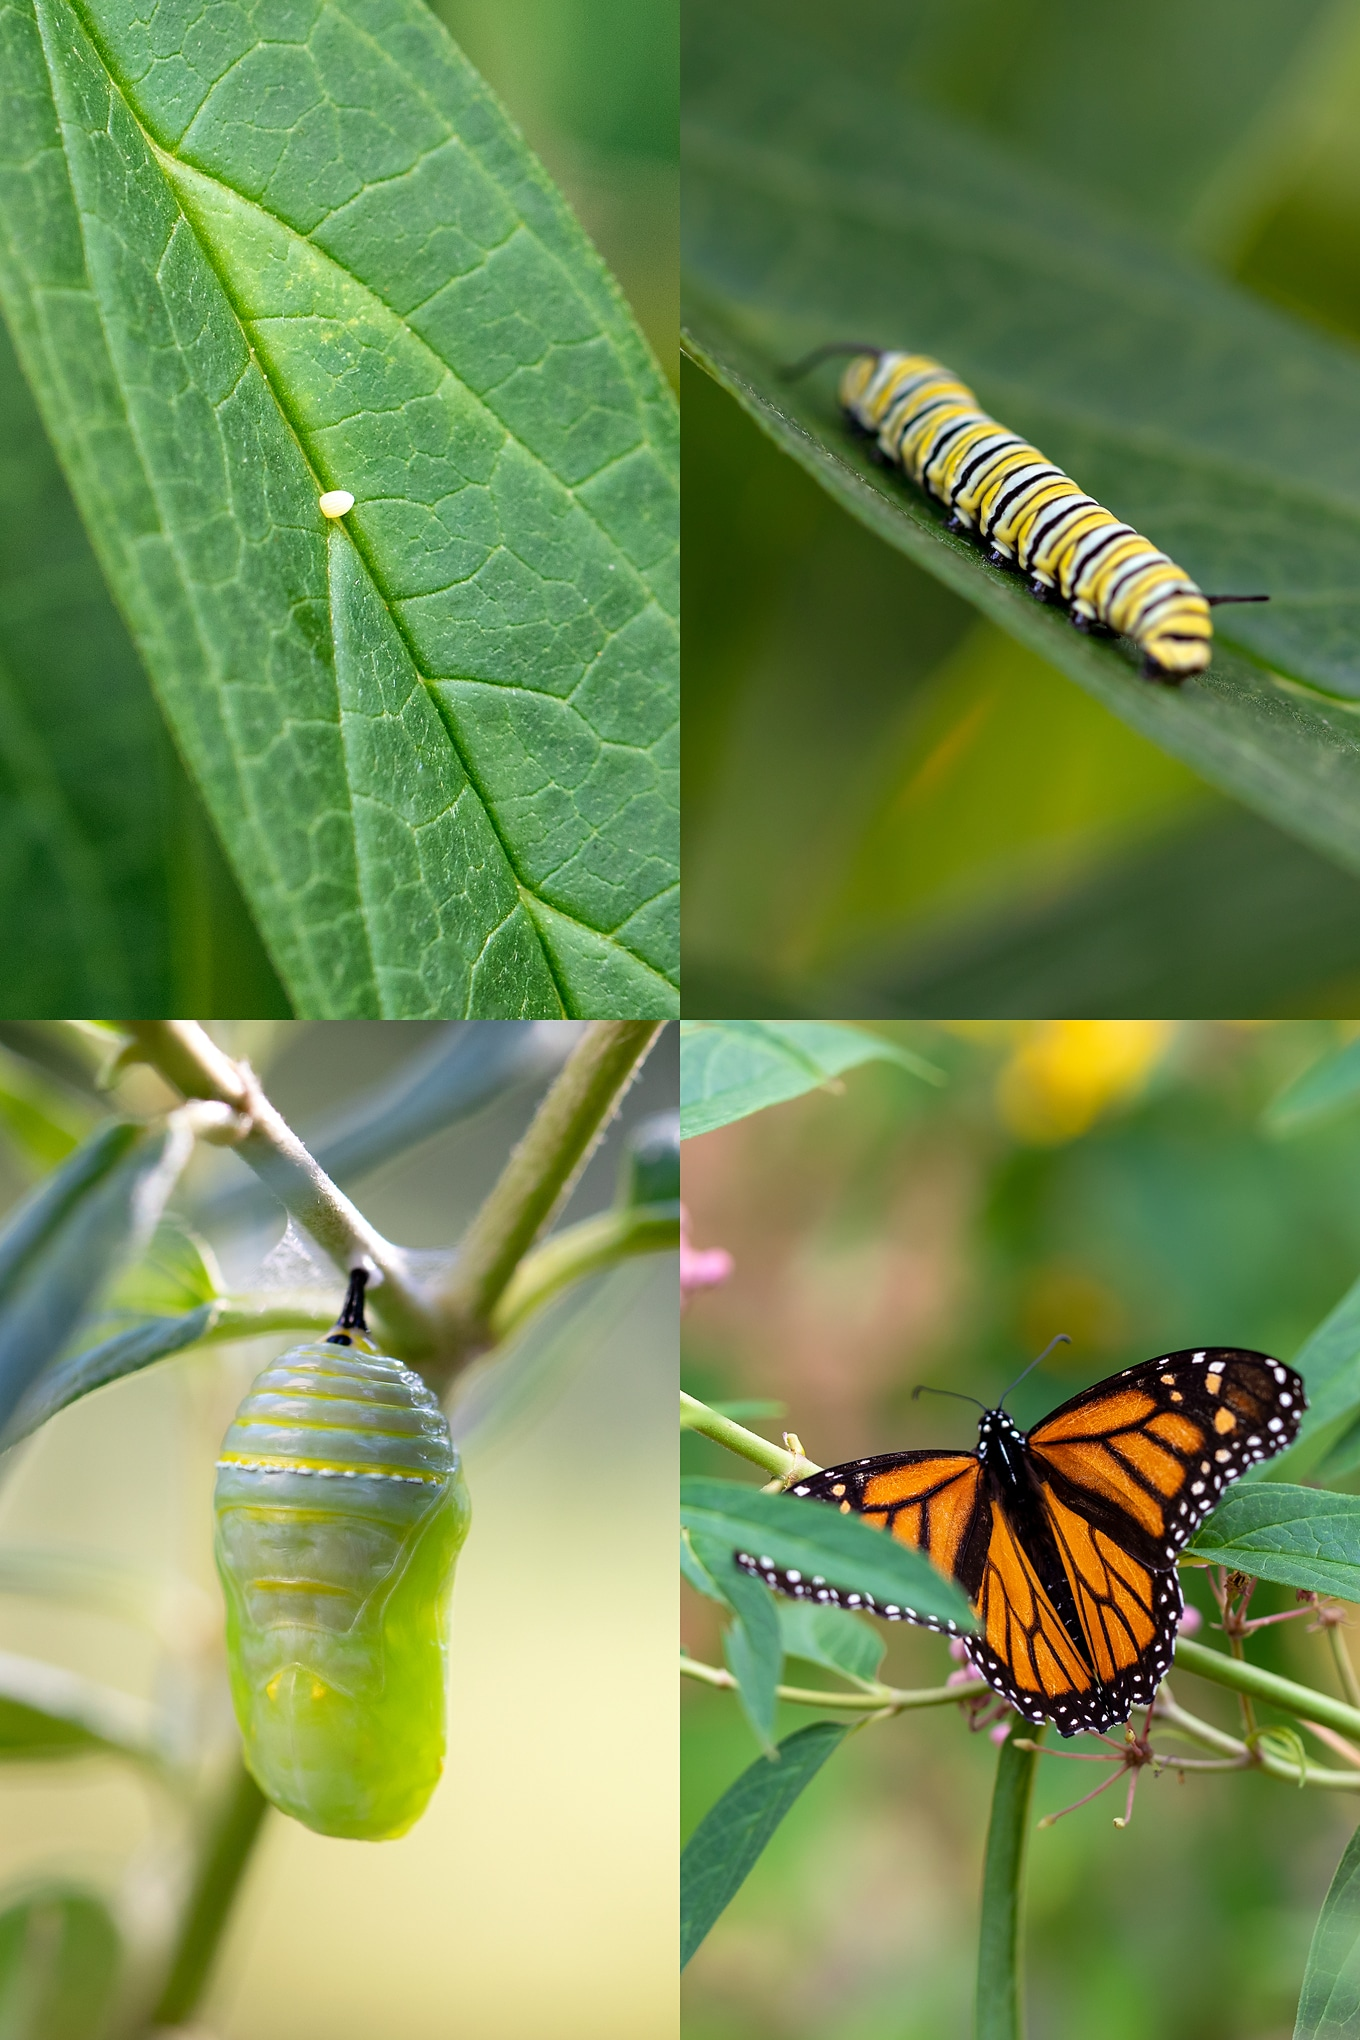 Monarch butterfly life cycle facts, photographs, video, and activities for kids. Tips for raising monarch butterflies with kids! #monarchbutterflylifecyclee #monarchbutterfly #raisingmonarchbutterflies #monarchlifecycle via @firefliesandmudpies